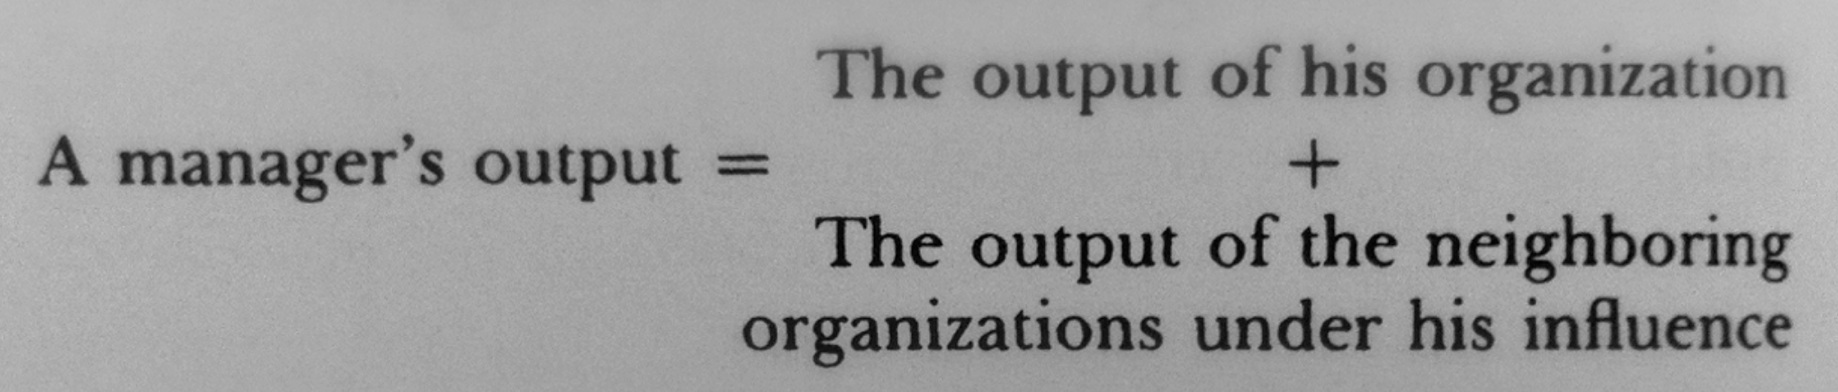 grove-managers-output